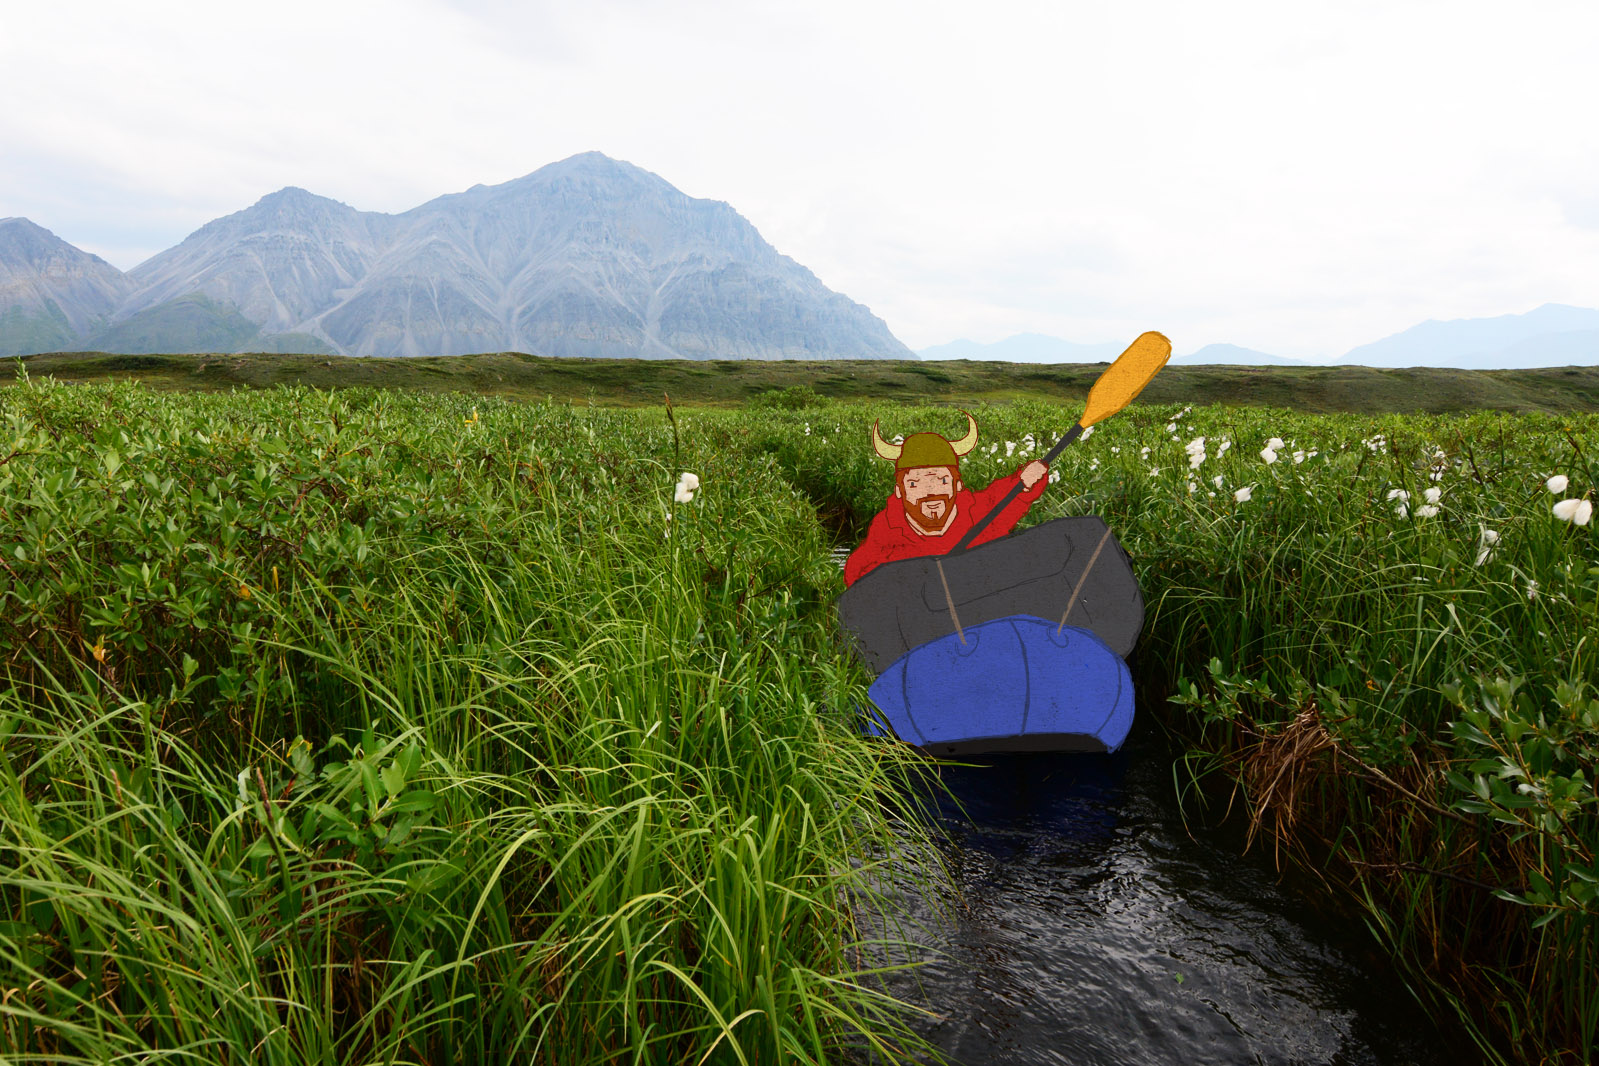 Jason packrating through a narrow channel in the grass, with the Brooks Range mountains of Alaska behind him